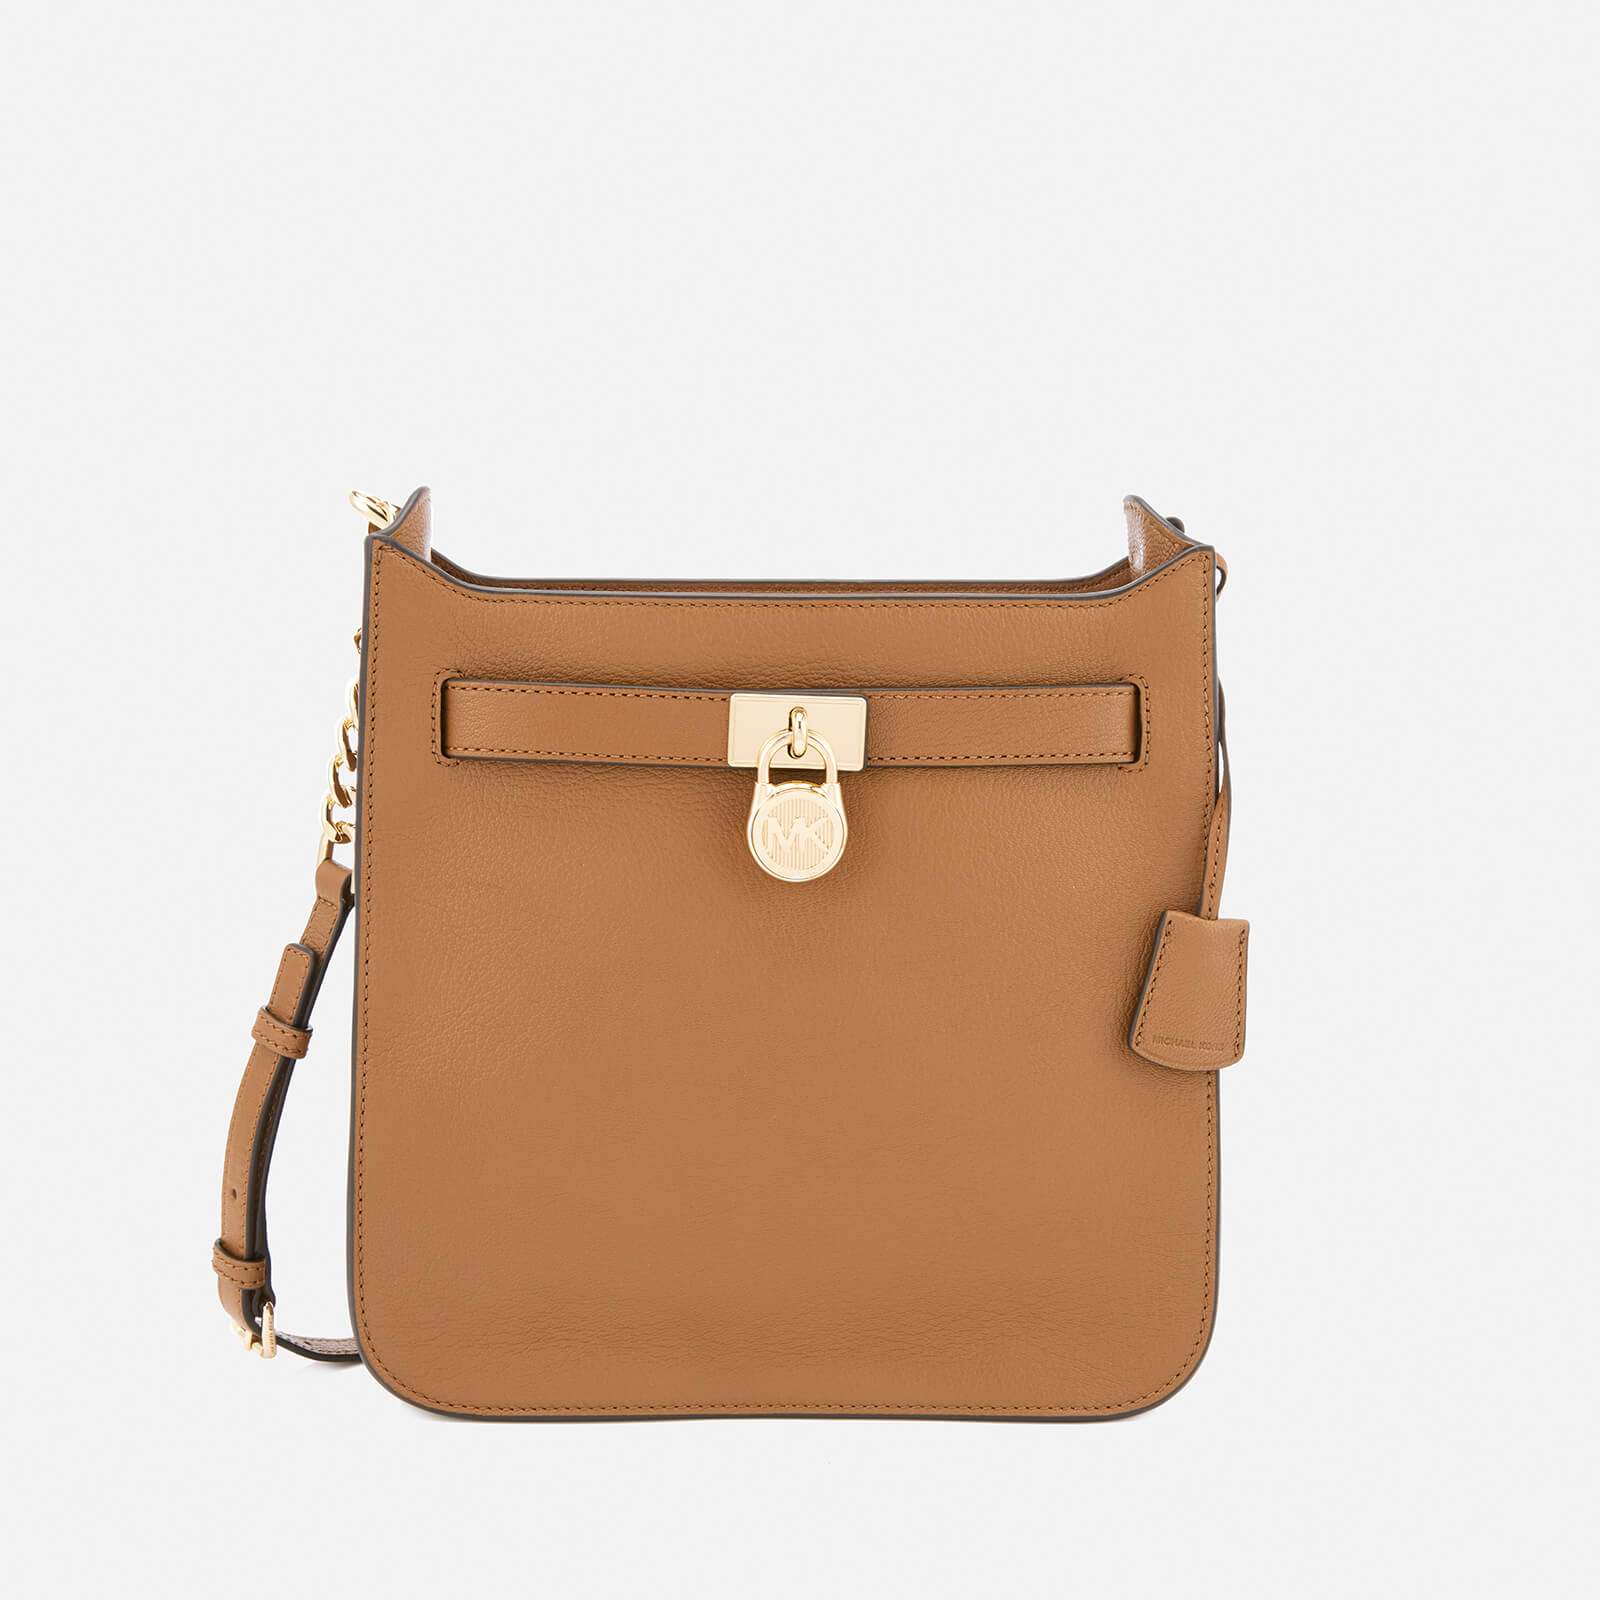 6240553d1efe5 MICHAEL MICHAEL KORS Women s Hamilton Medium North South Messenger Bag -  Acorn - Free UK Delivery over £50